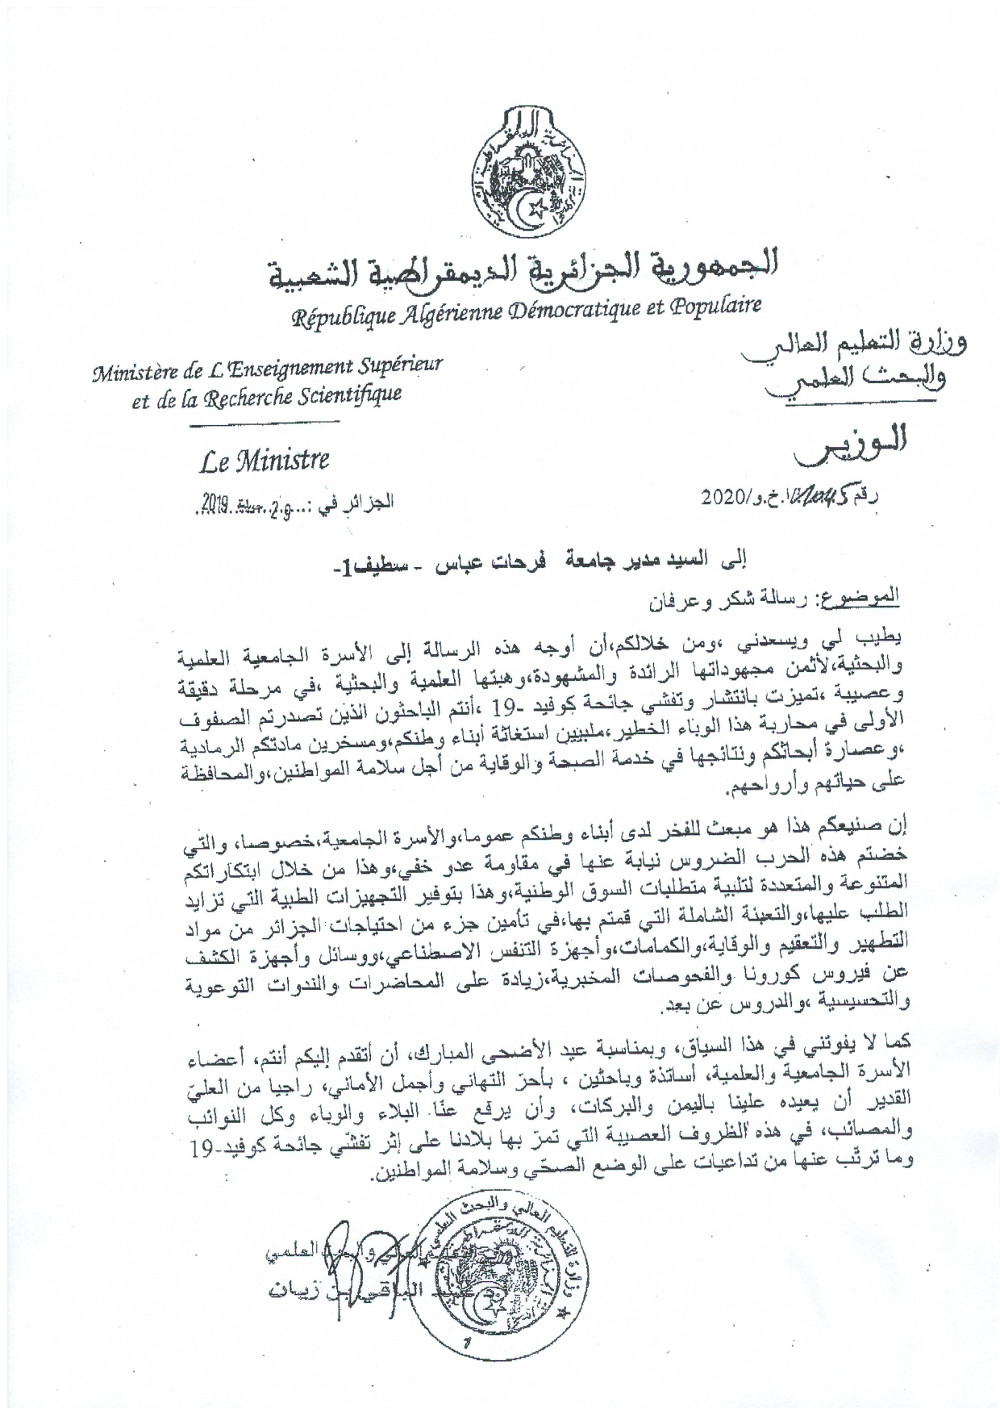 Appreciation letter from the Minister of Higher Education and Scientific Research